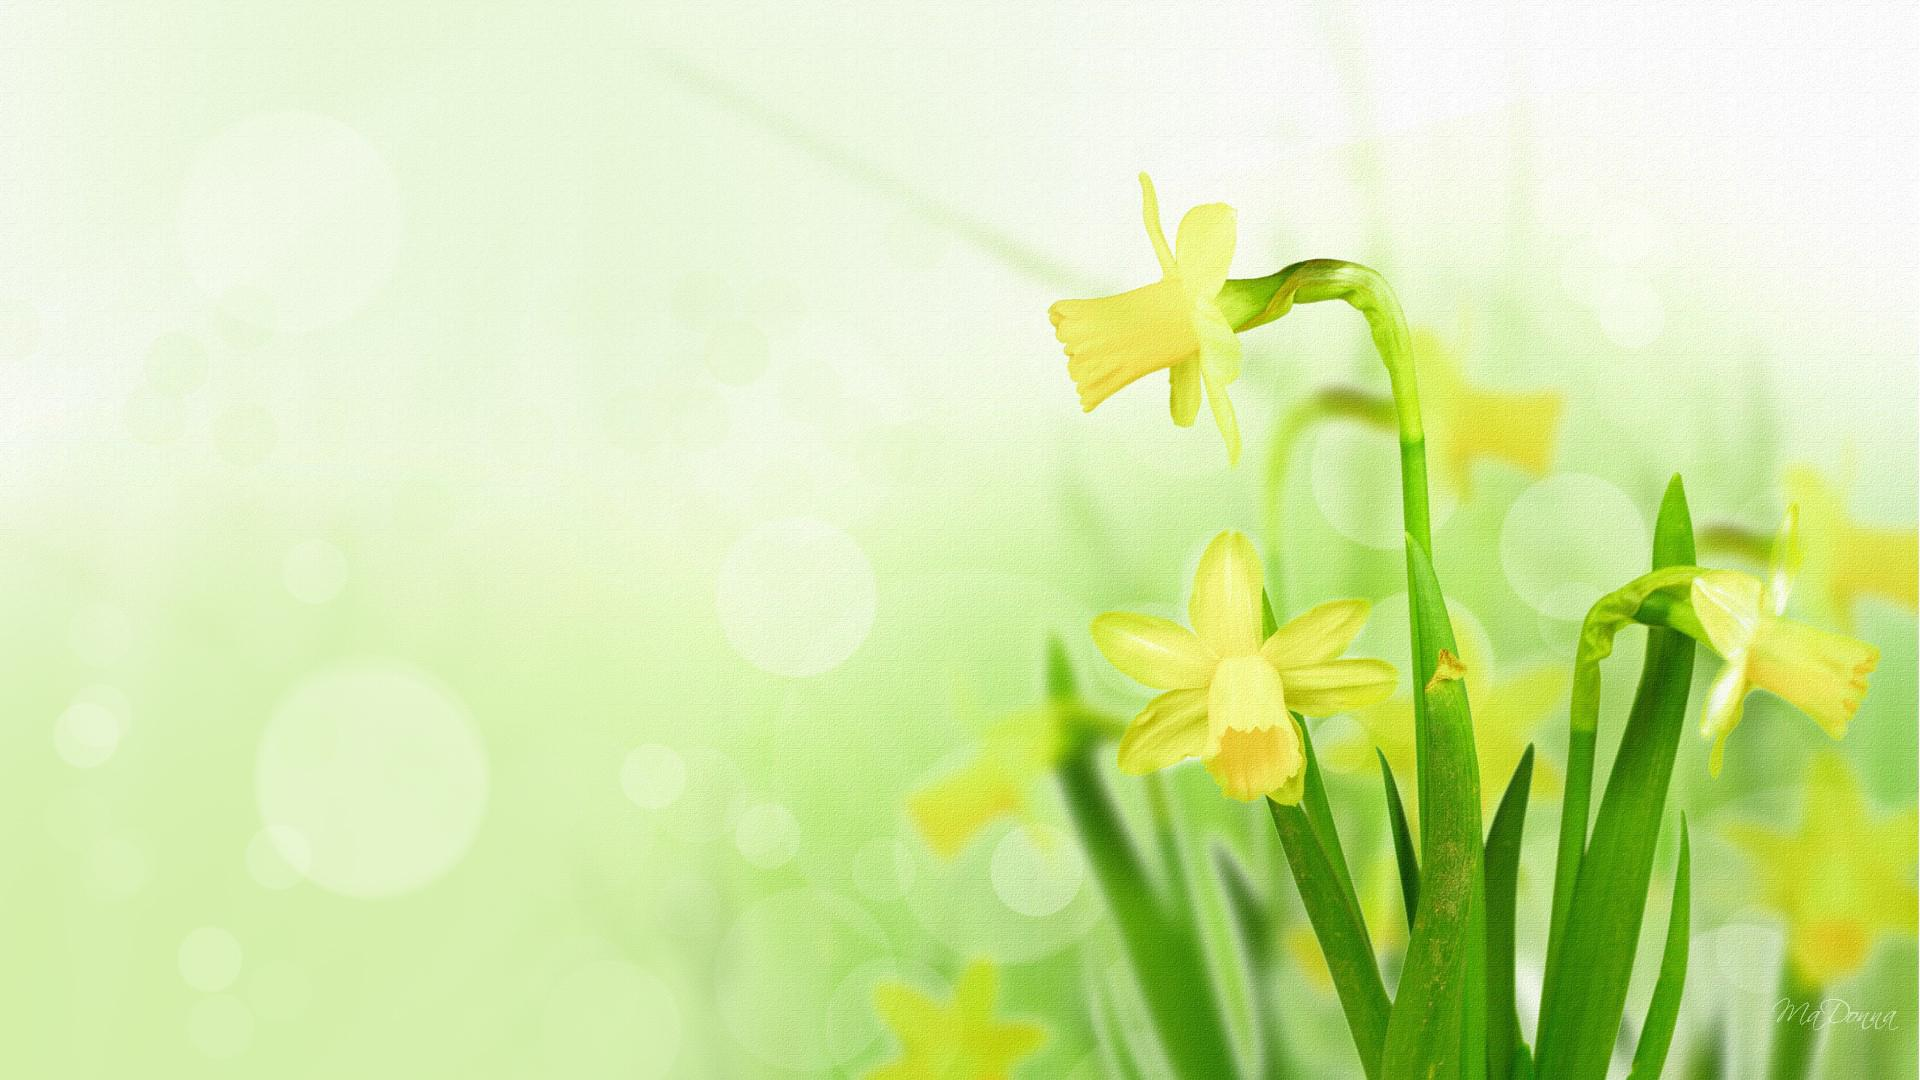 Daffodil Wallpapers Free Images Cool Flowers Hd 1920x1080px